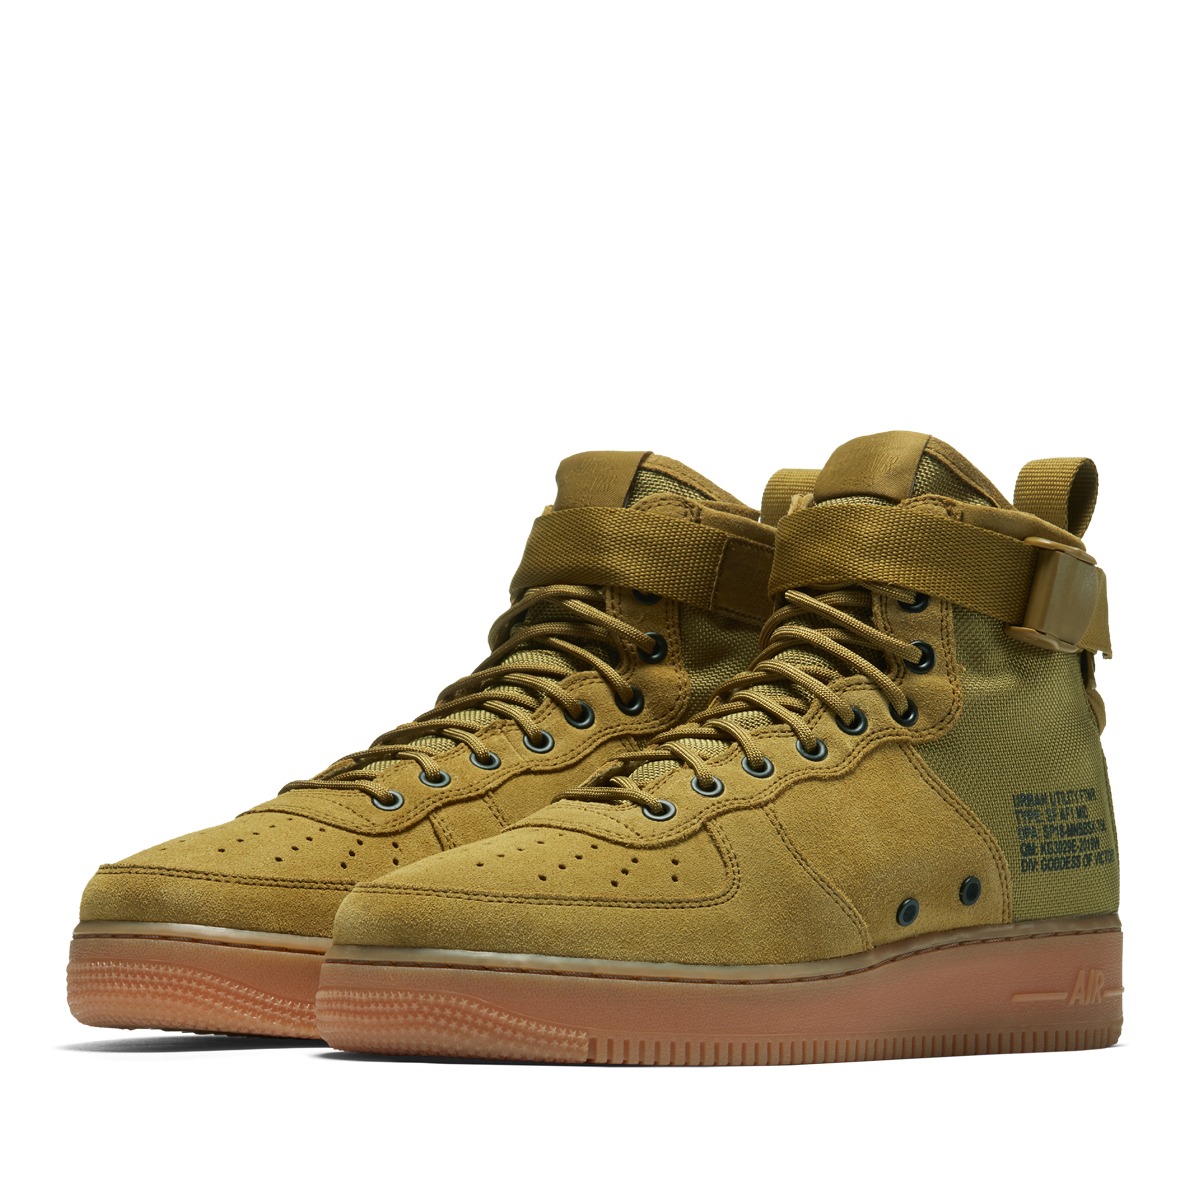 4ebc05b385dba NIKE SF AF1 MID (Nike special field air force 1 mid) DESERT MOSS DESERT MOSS-GUM  MED BROWN 18SP-I